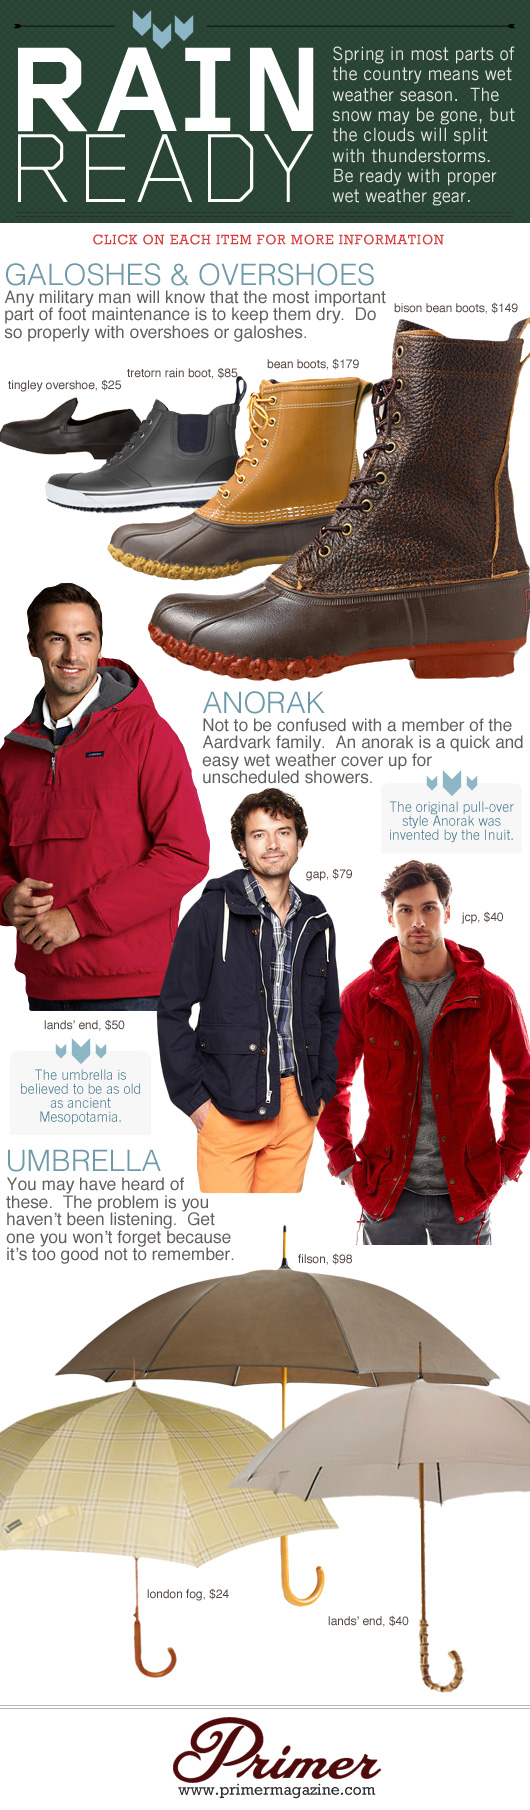 Rain Ready collage of waterproof clothing items